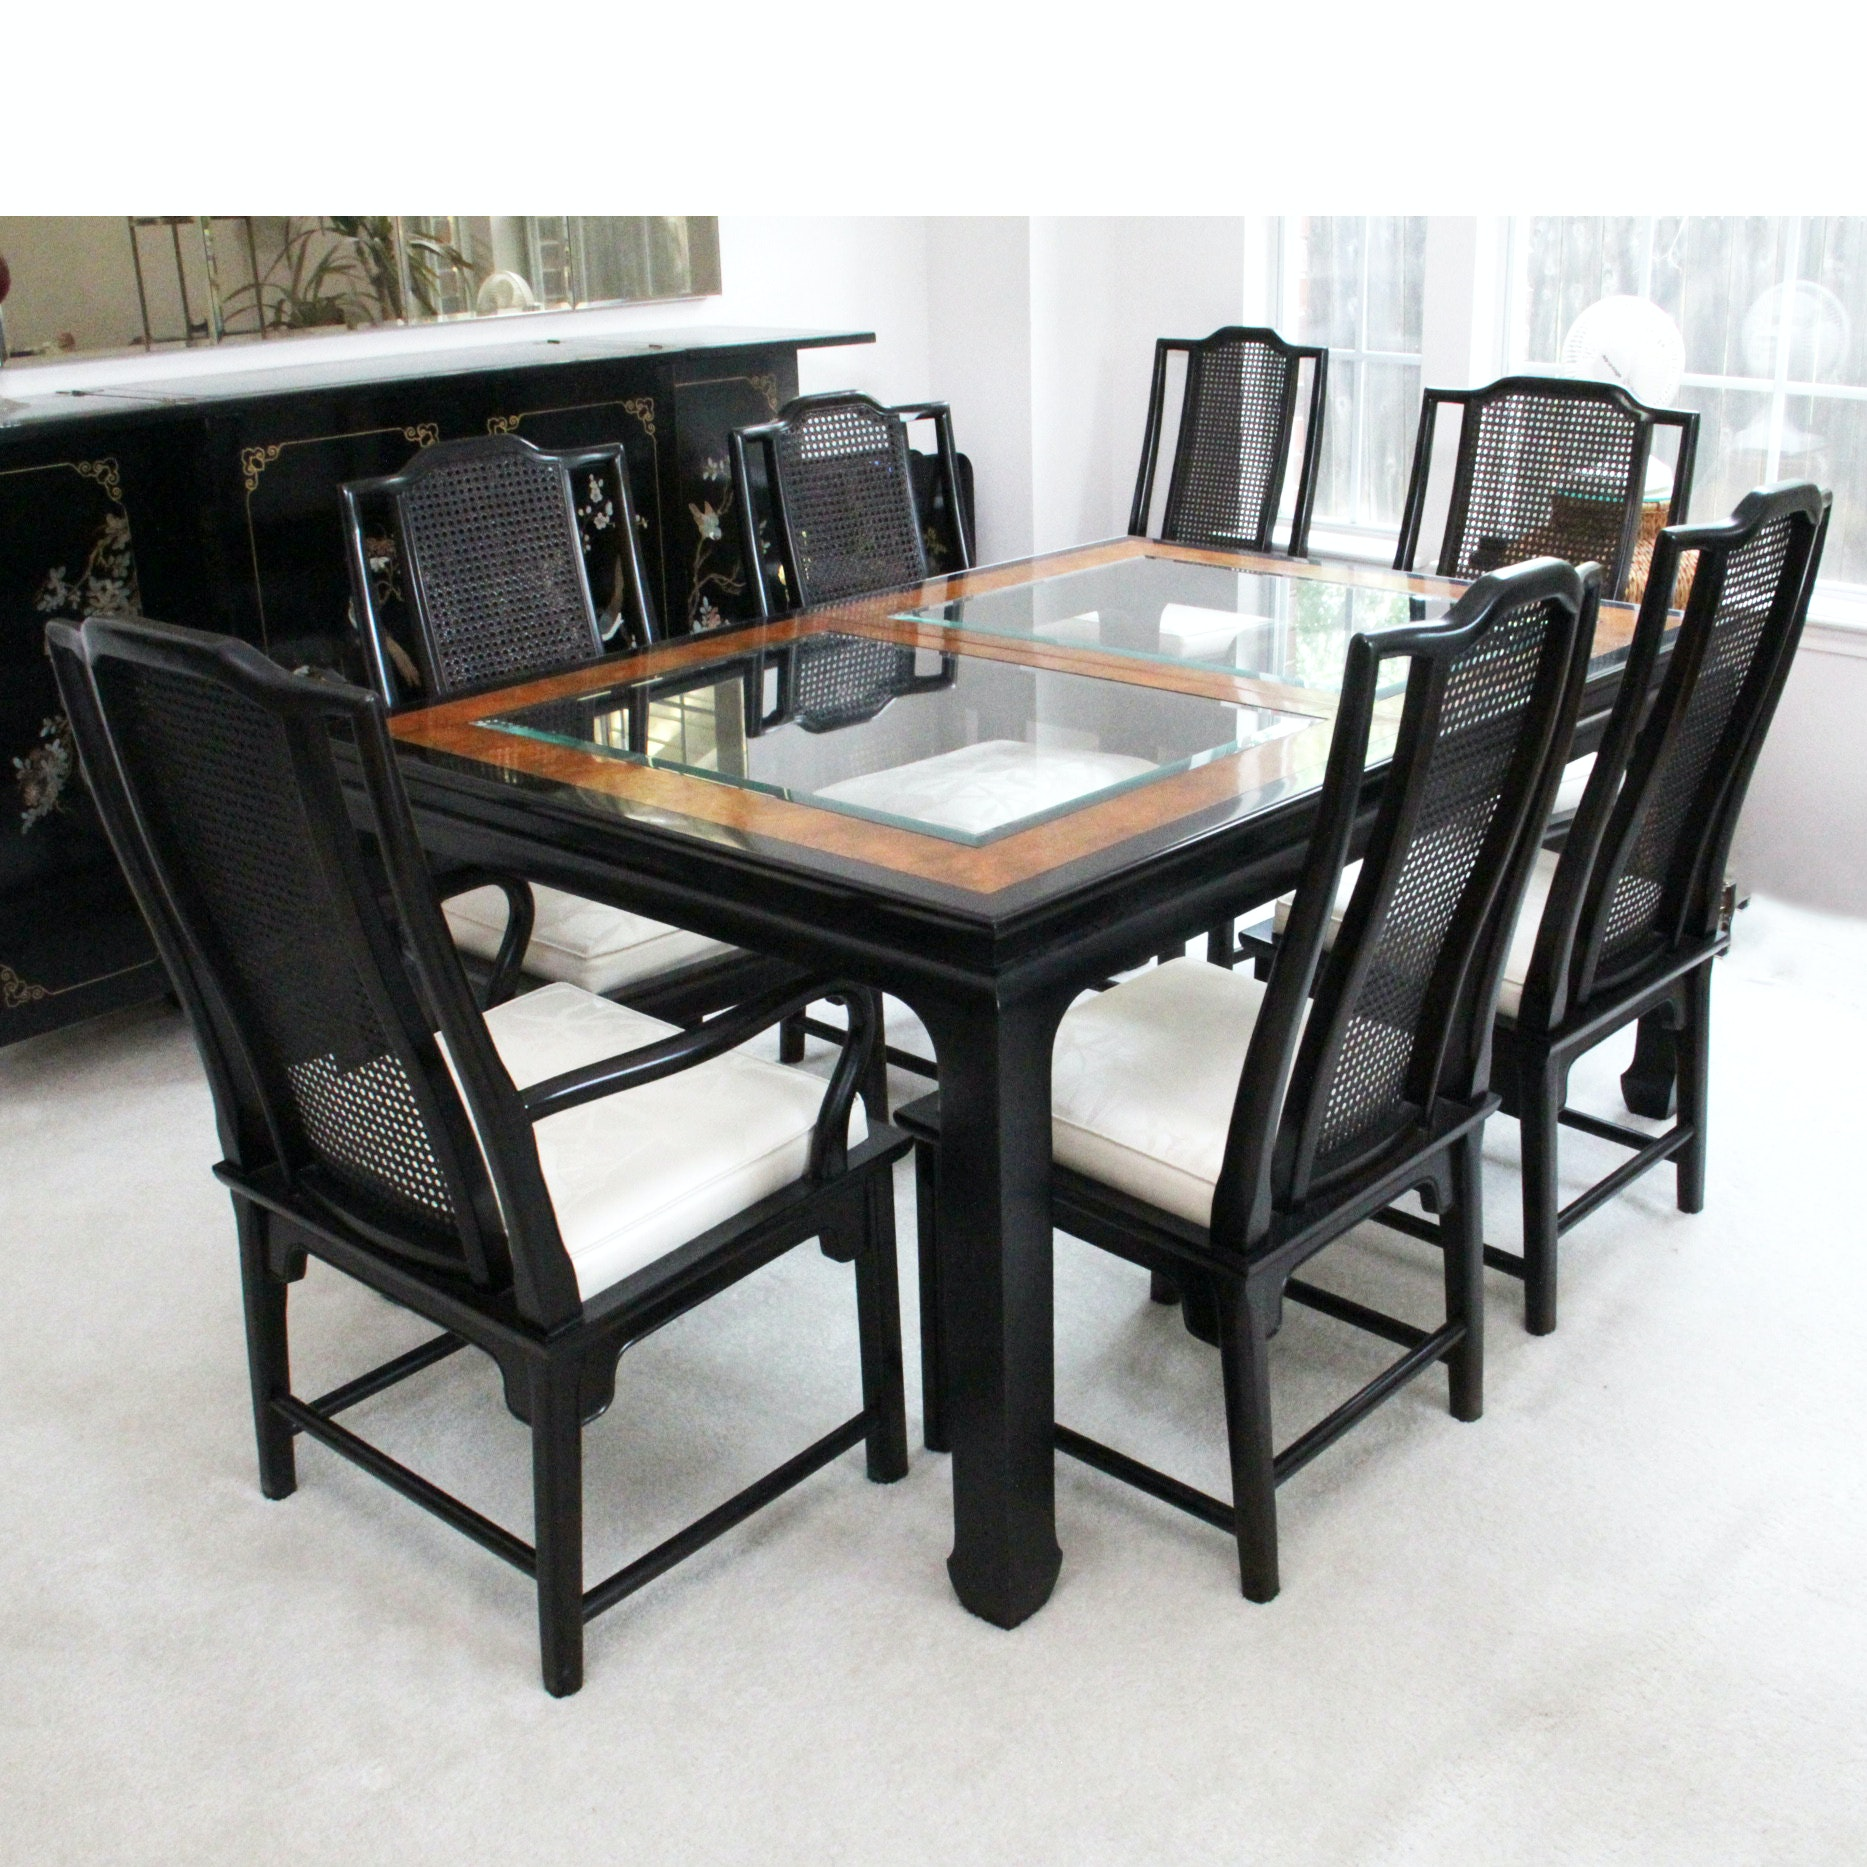 Asian Inspired Black Lacquer Table and Eight Chairs